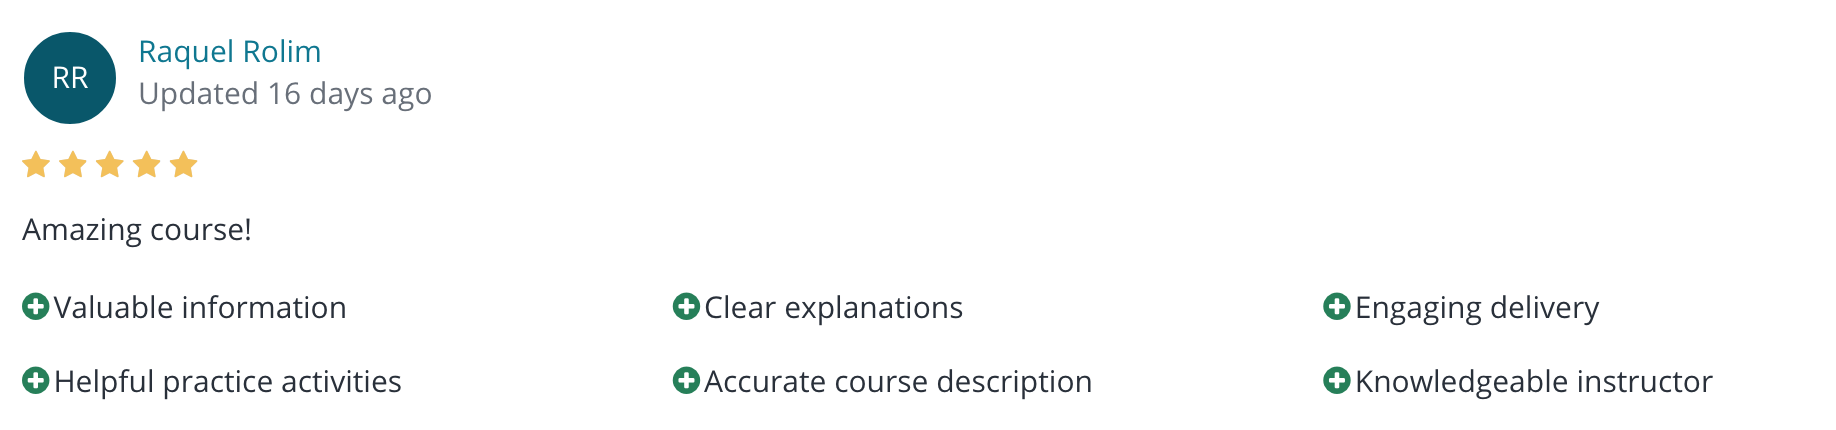 Feedback from our online training student